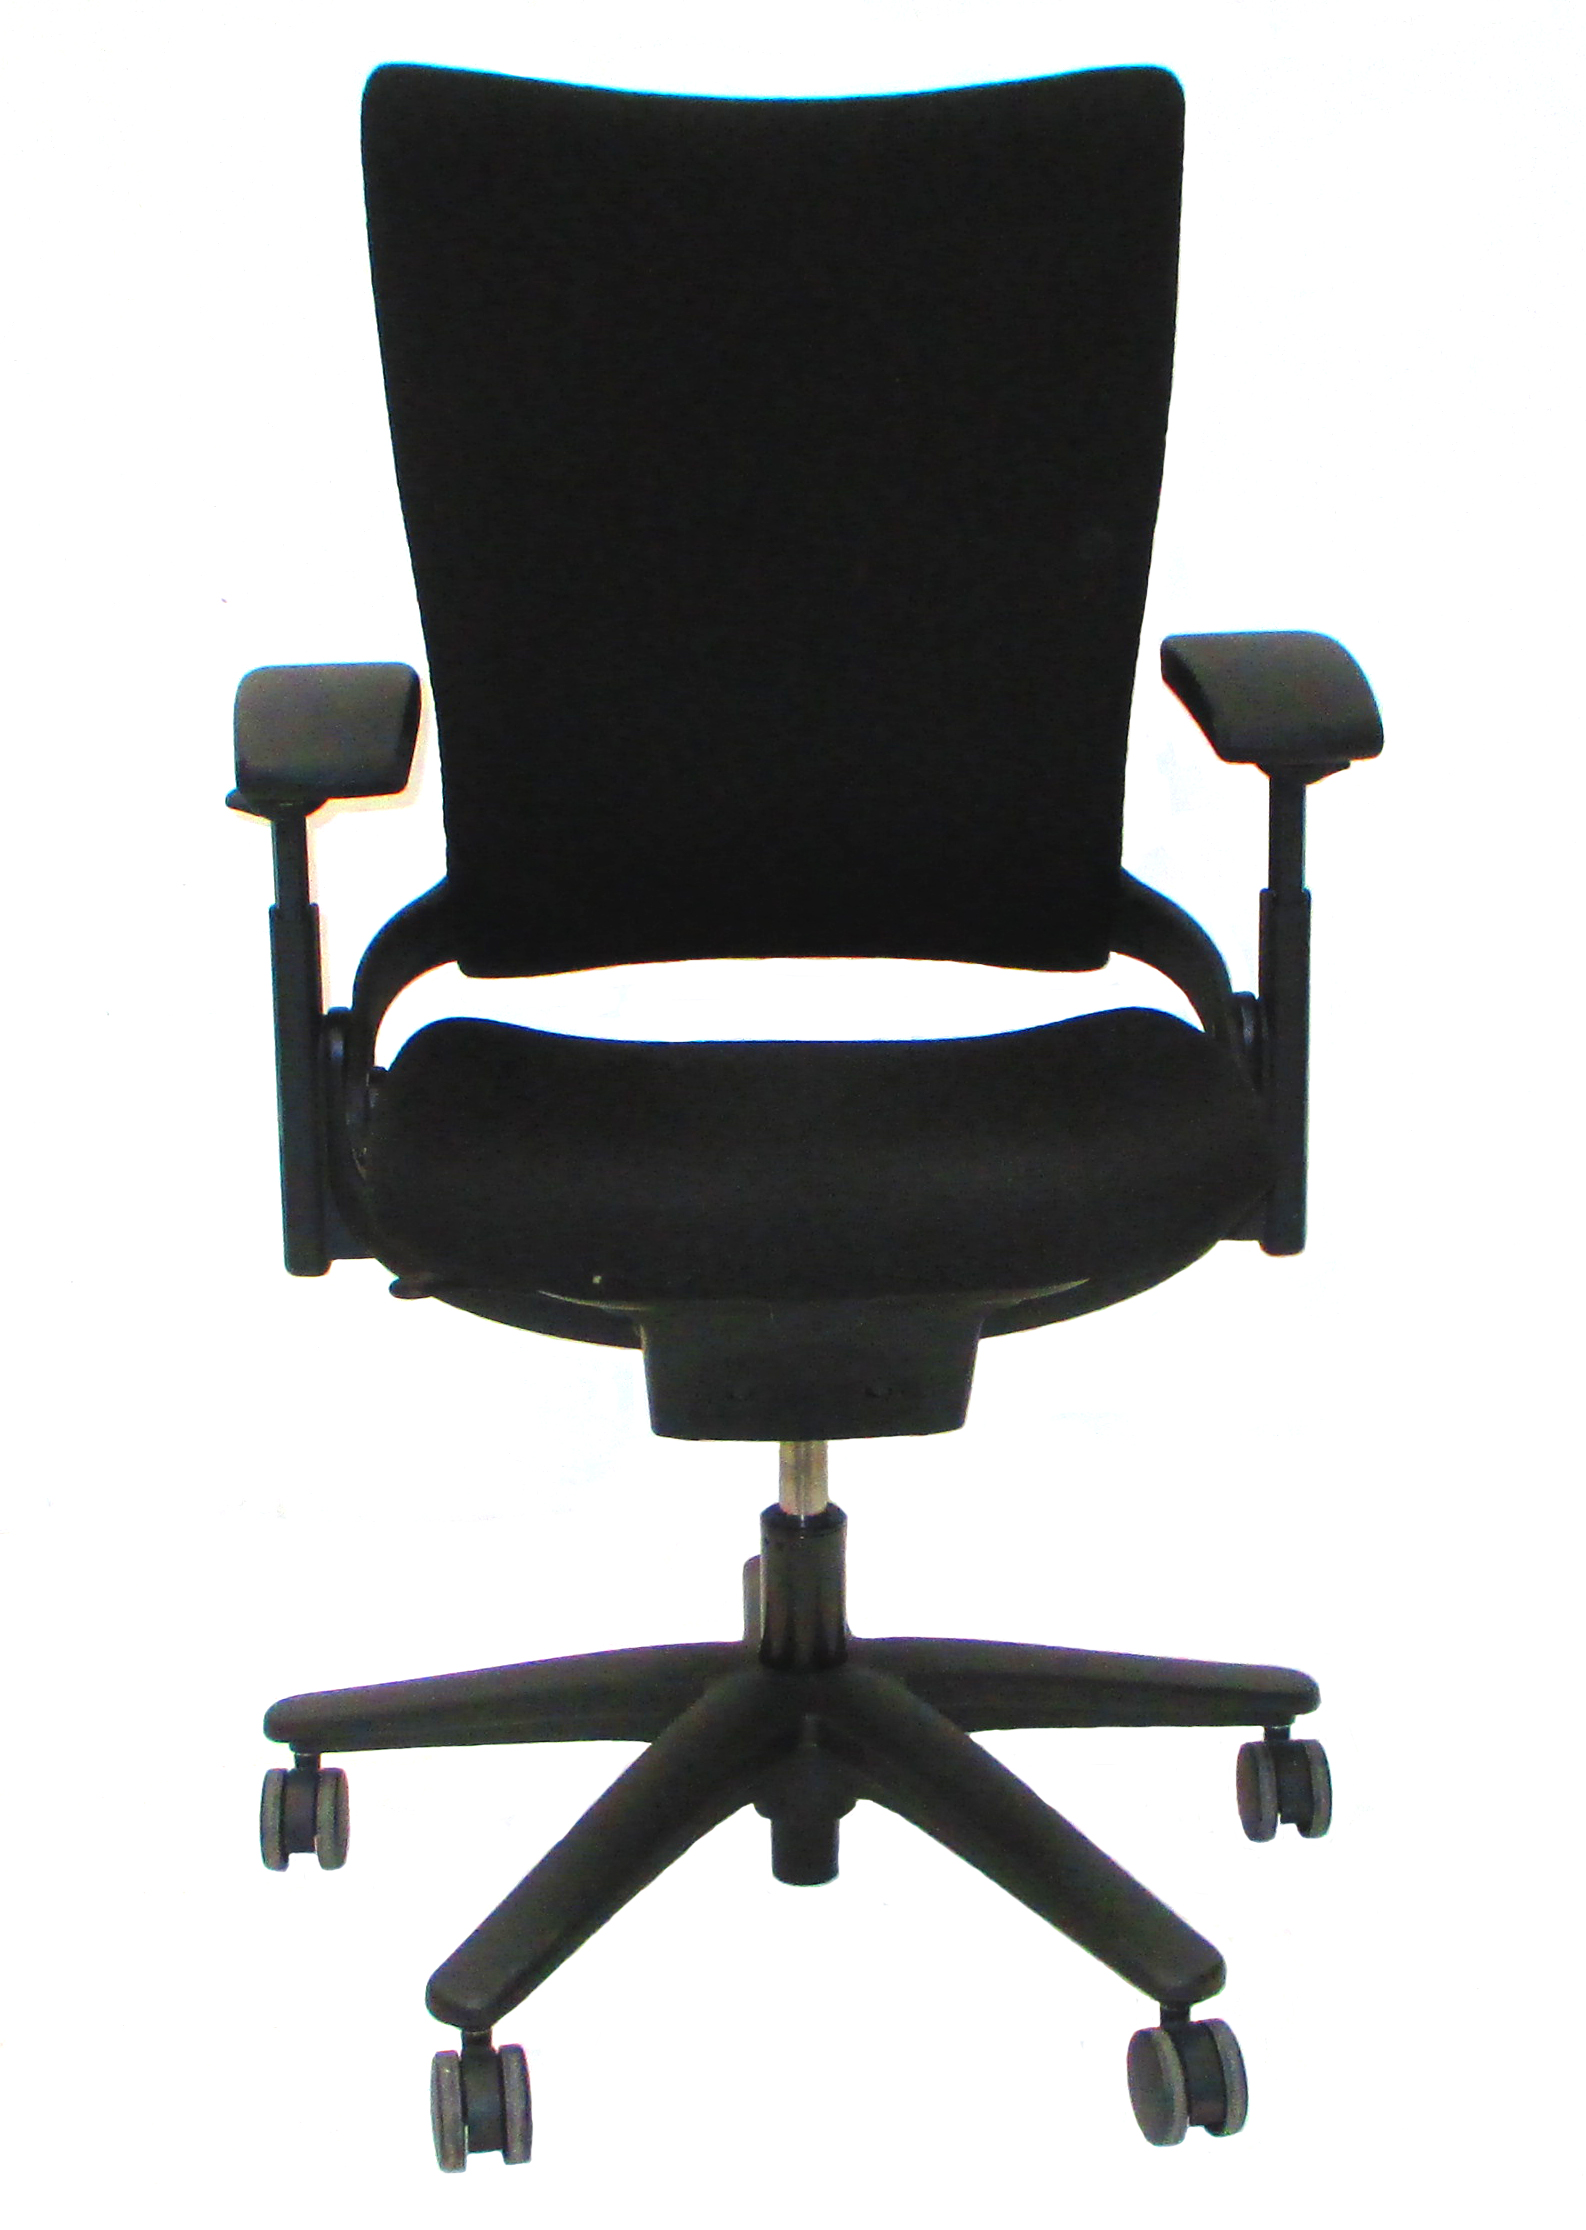 Used fice Furniture Allsteel Sum Task Chair with Black Fabric